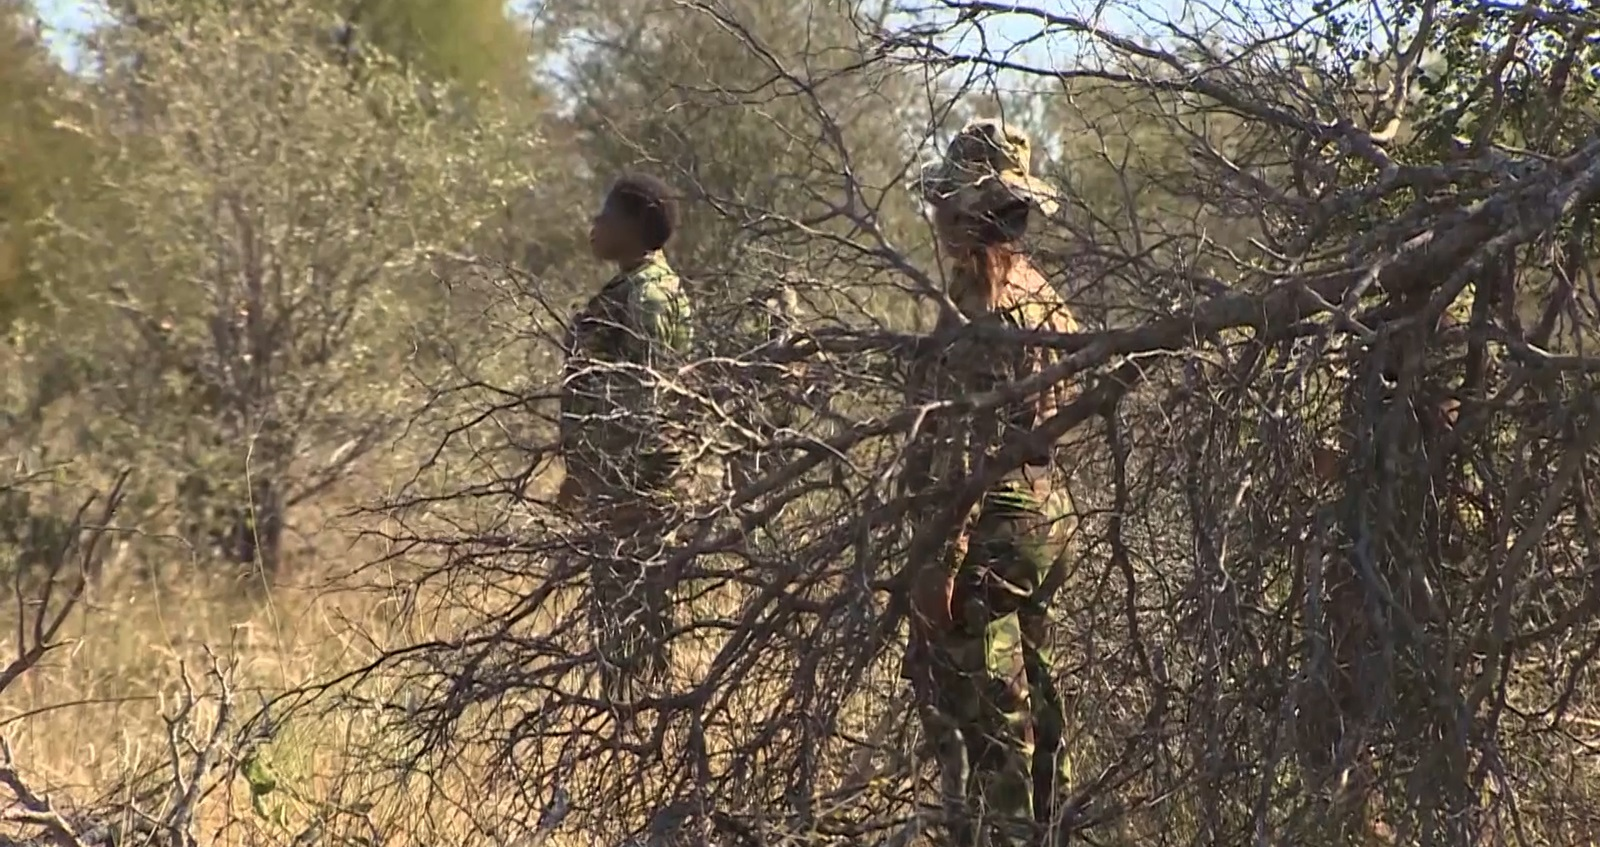 Army and rangers working on counter-poaching operations in Malawi